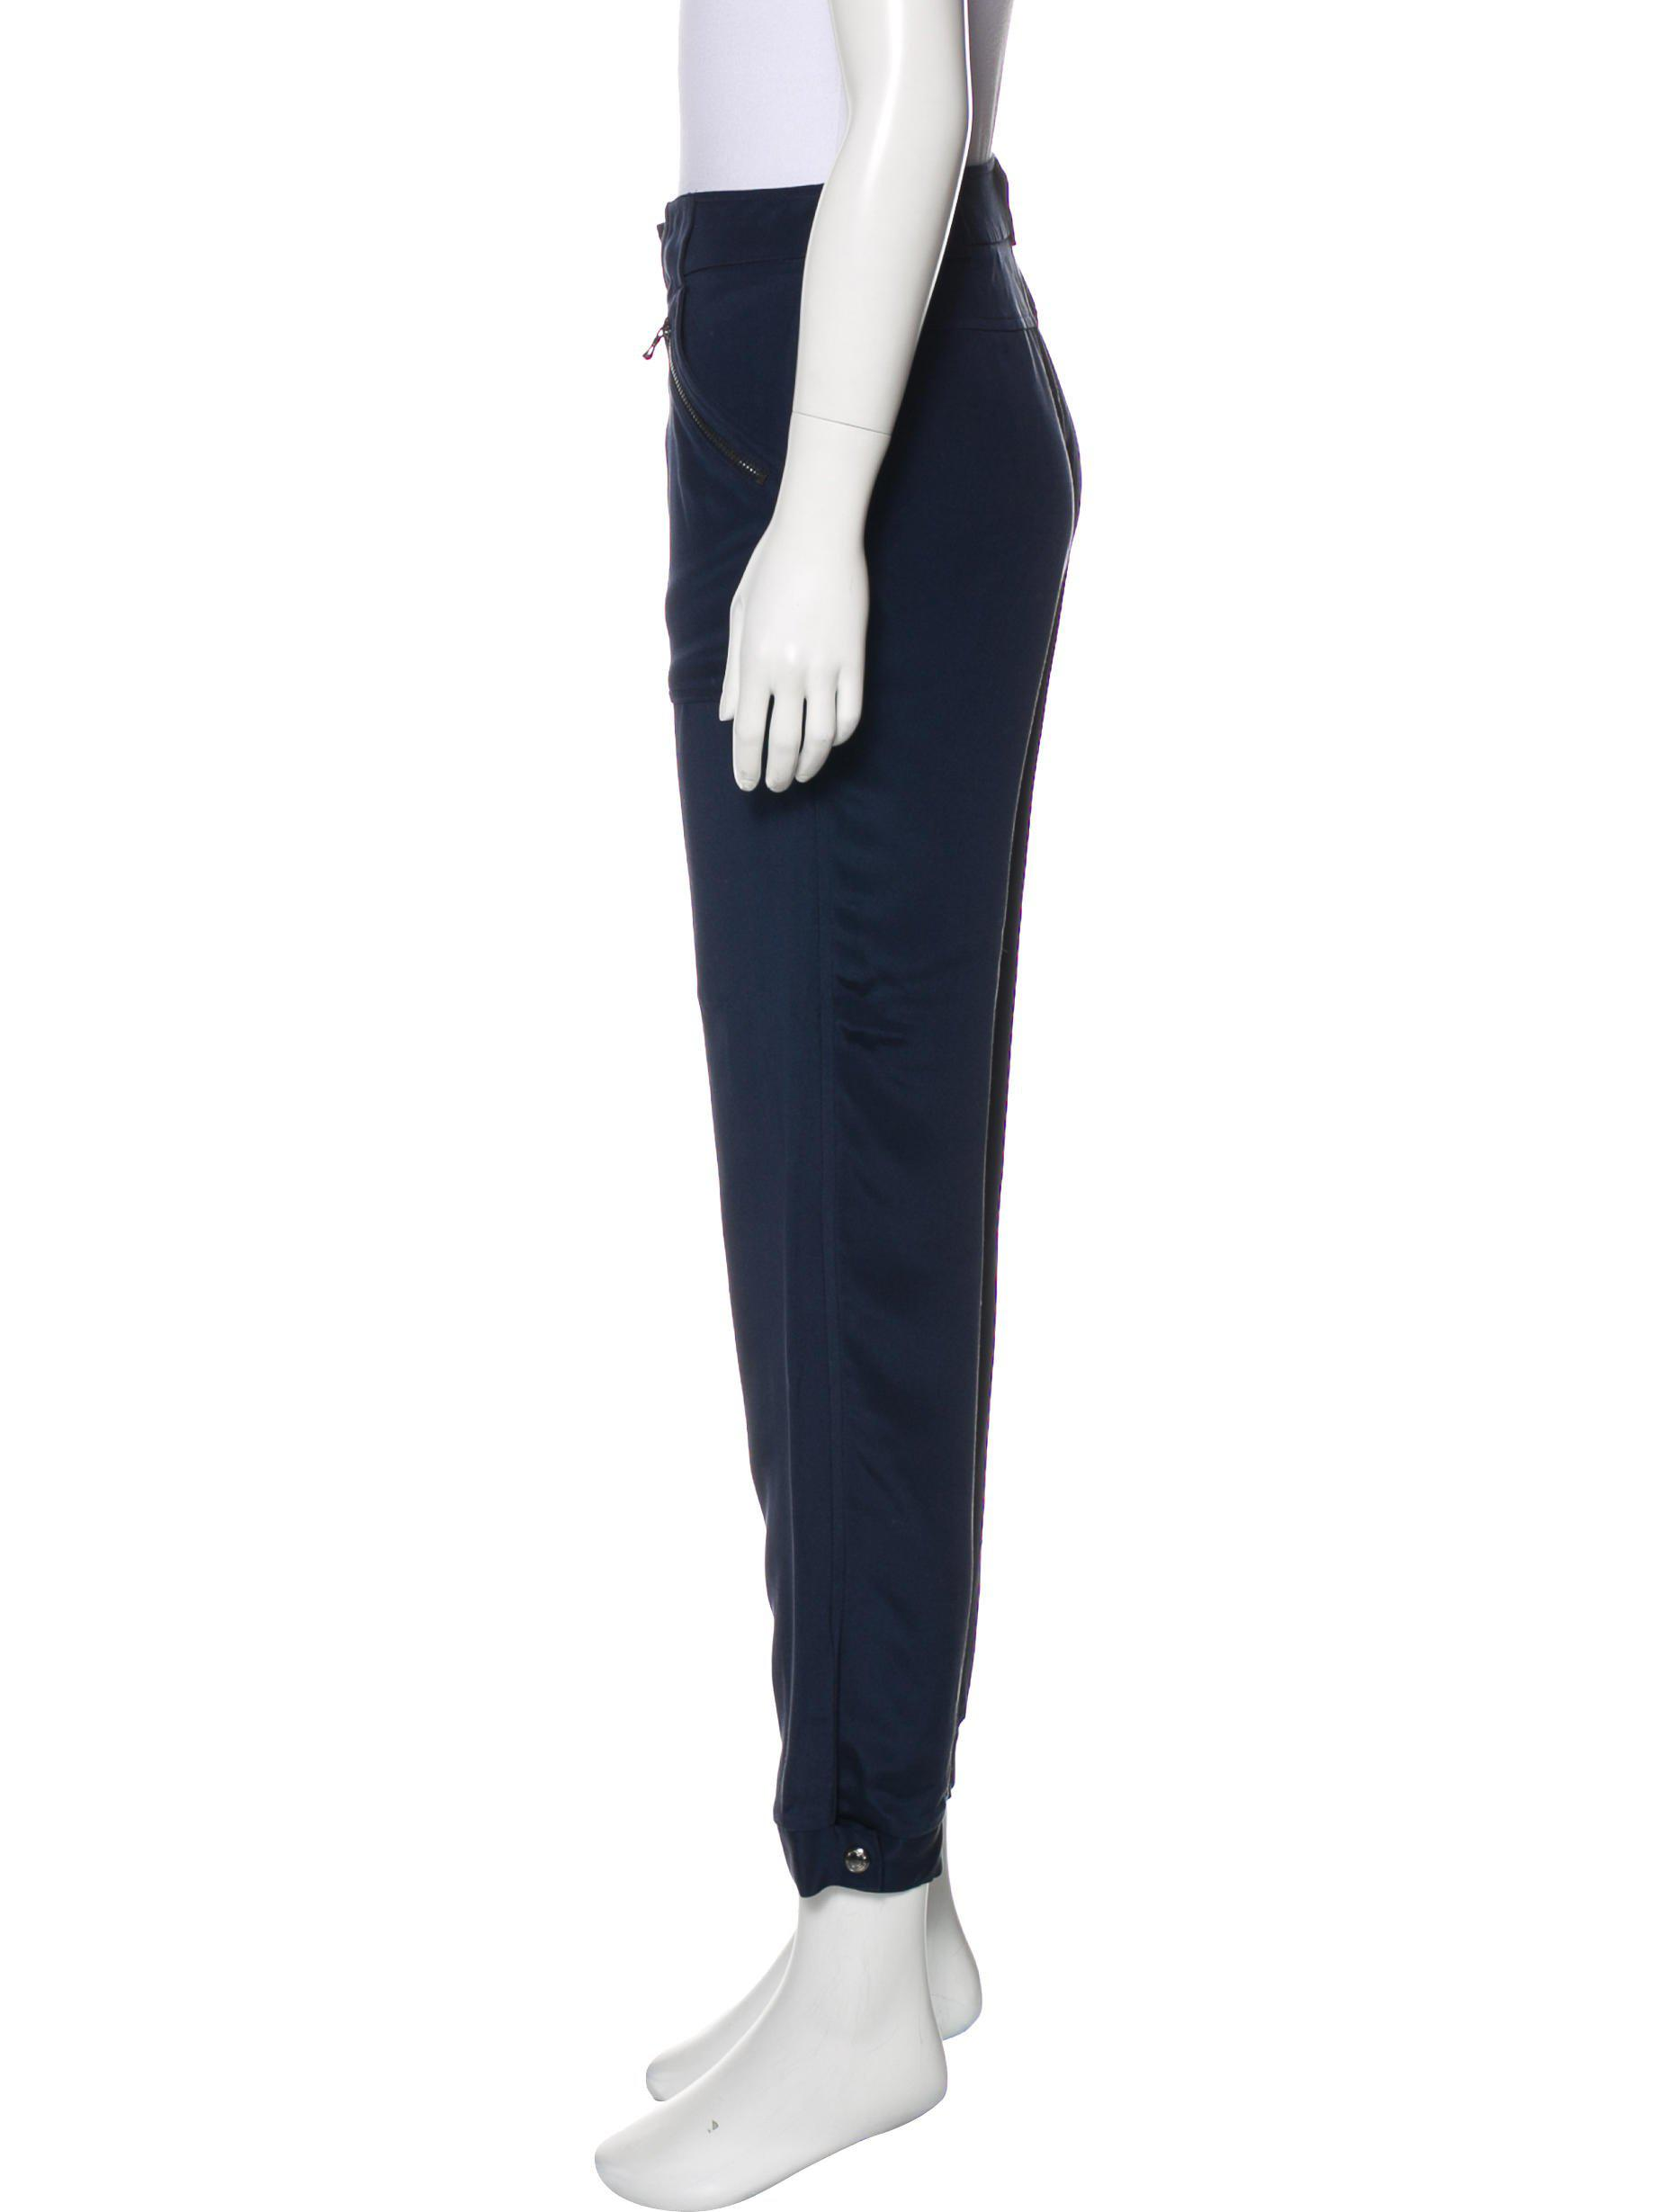 Discount Low Price Discount 2018 New Magaschoni Mid-Rise Silk Cargo Pants Prices Cheap Price Cheap Real Finishline 51kHYqzrnE